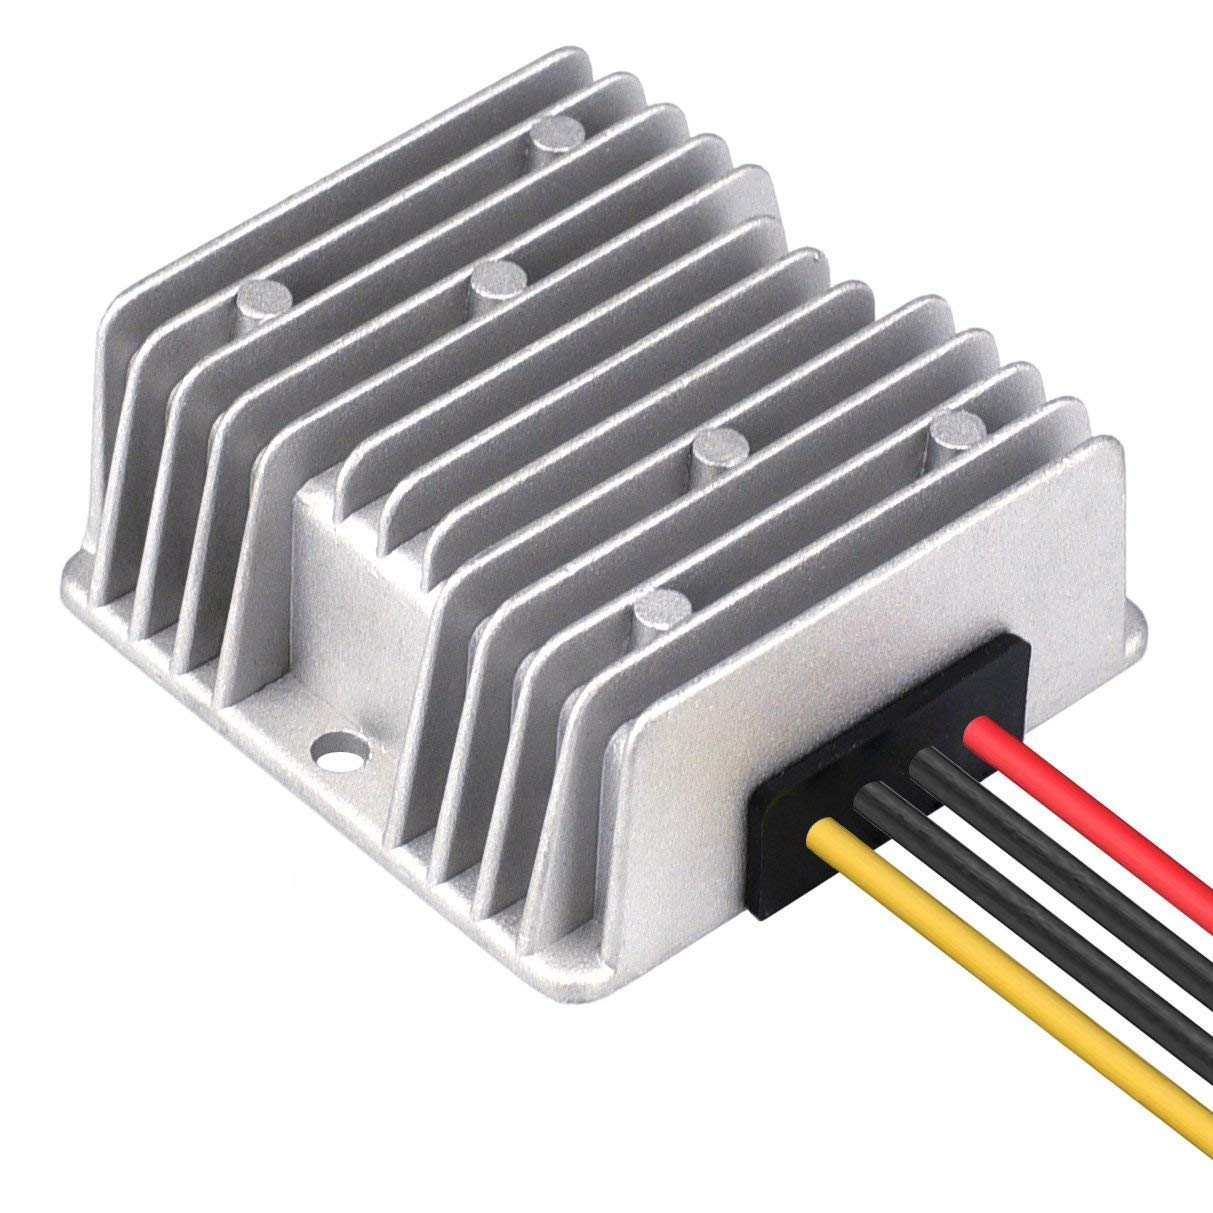 Yohii Voltage Buck Converter Regulator Transformer Power Supply for Car Truck Vehicle (36V to 12V 20A)